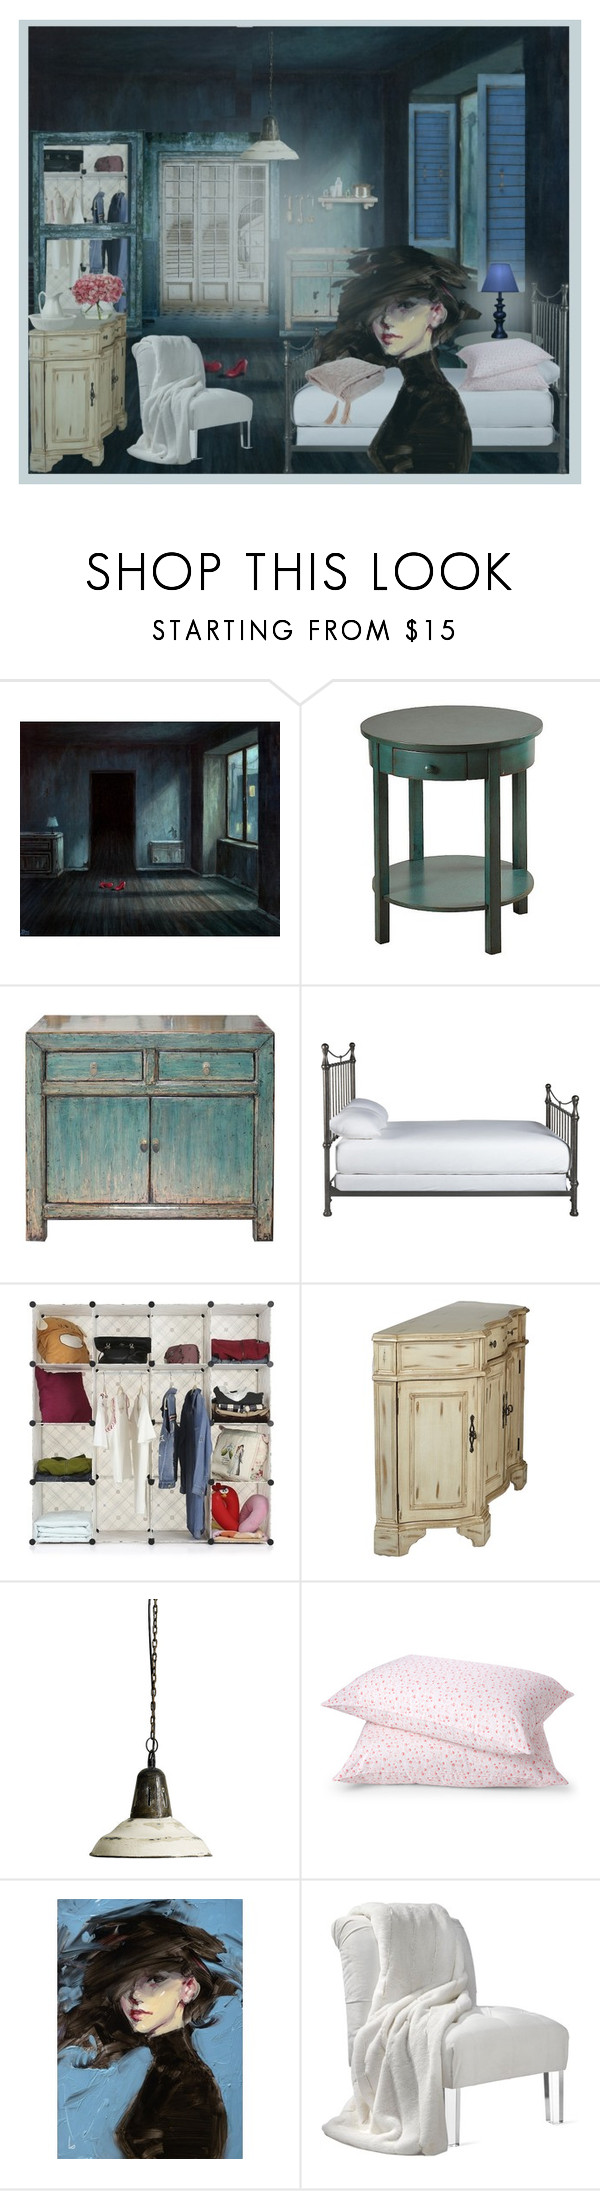 """Student quarter"" by ereerece ❤ liked on Polyvore featuring interior, interiors, interior design, home, home decor, interior decorating, Stylecraft, Ethan Allen and Laura Ashley"